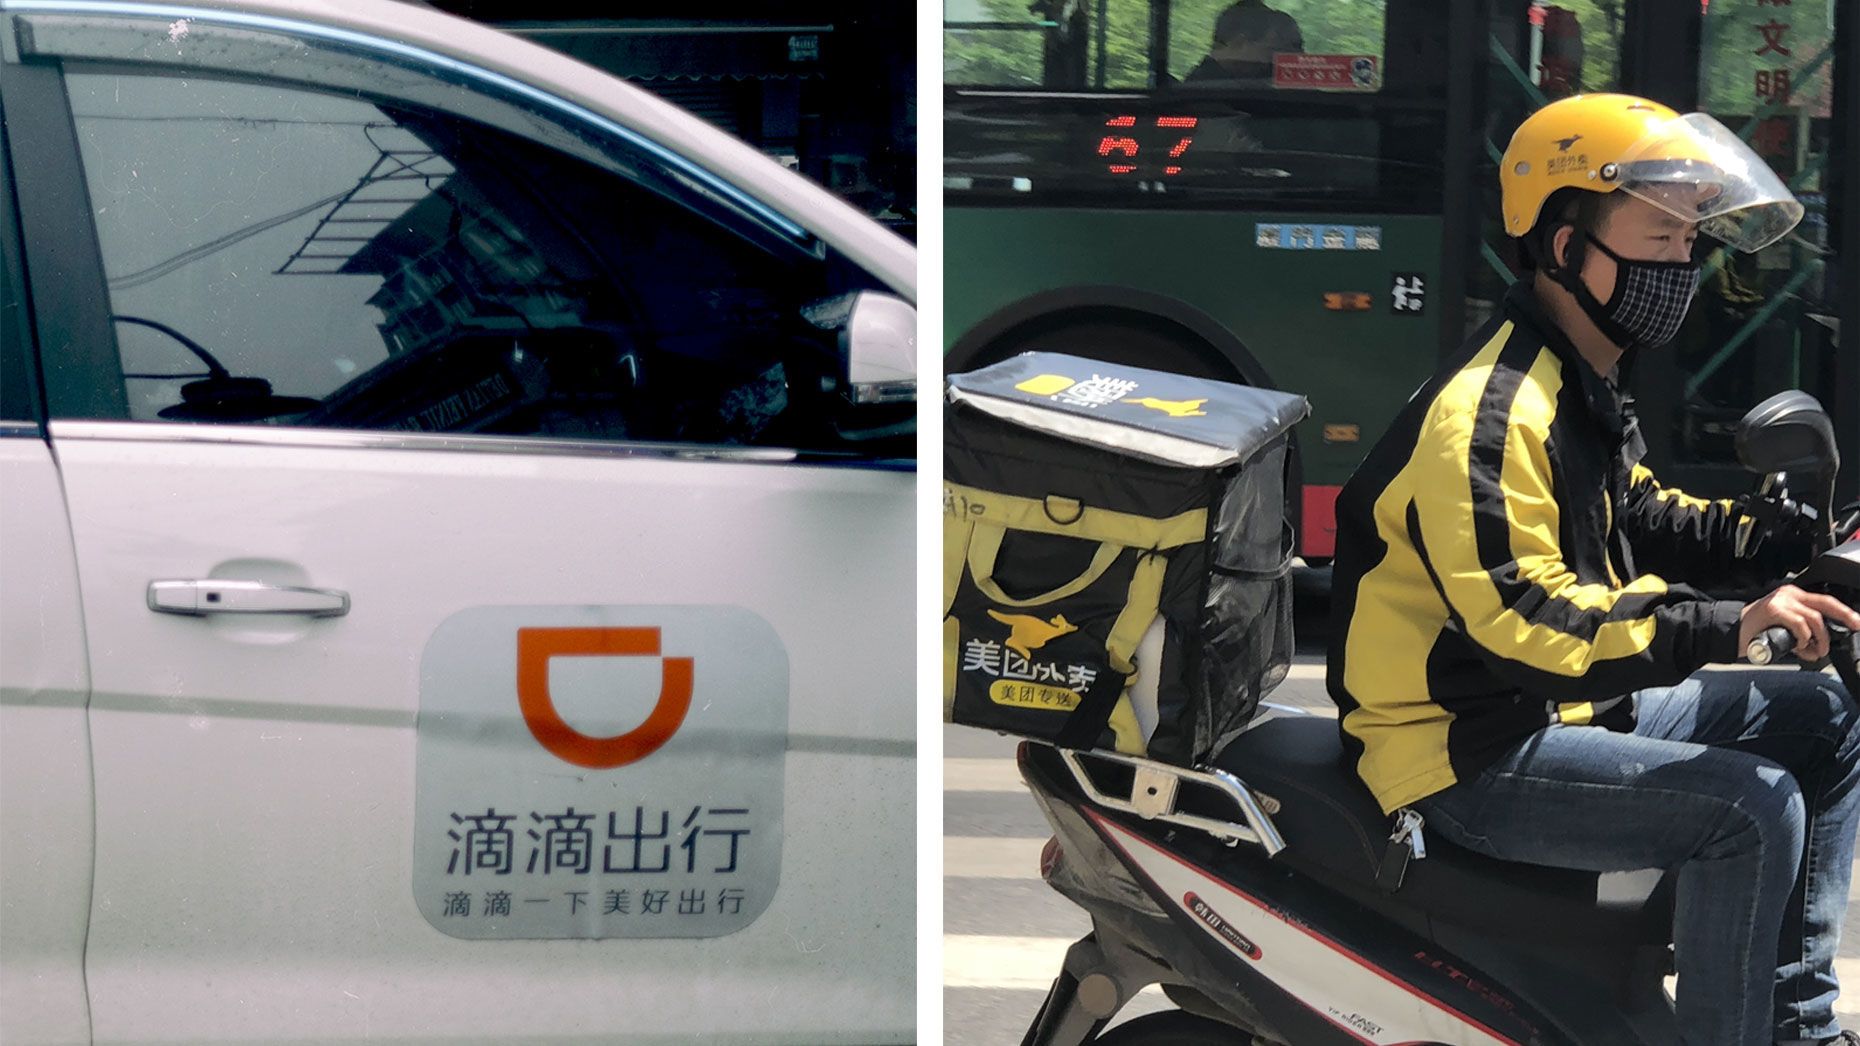 A Didi vehicle in Nanjing, China, left, and a Meituan food delivery courier in Wuxi, China. Photos: AP